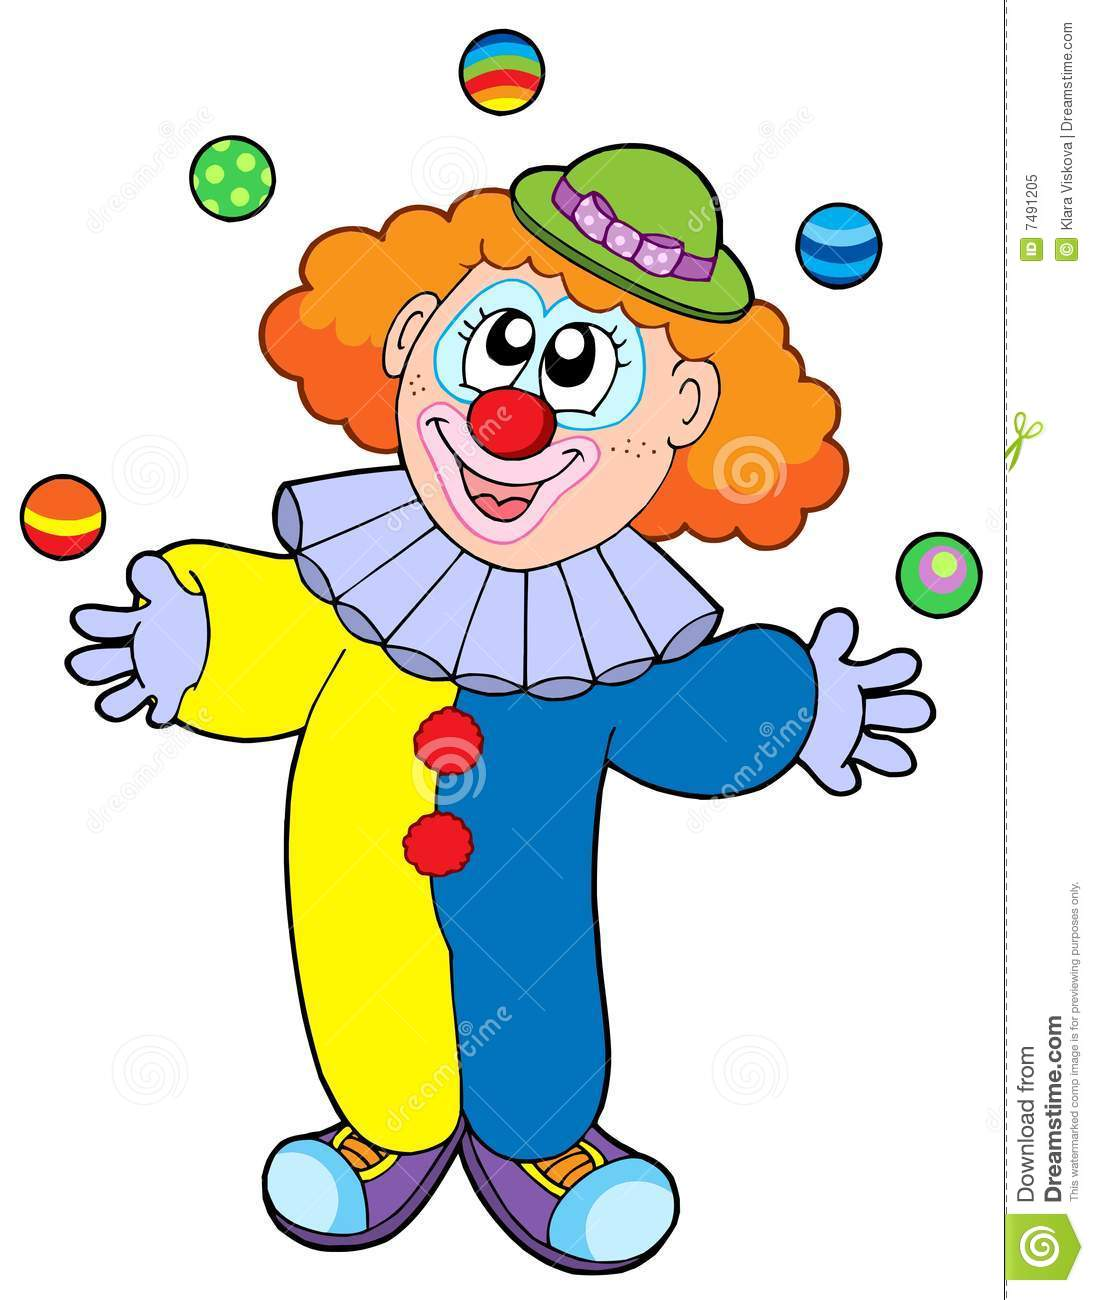 Juggling Cartoon Clown Royalty Free Stock Photo - Image: 7491205